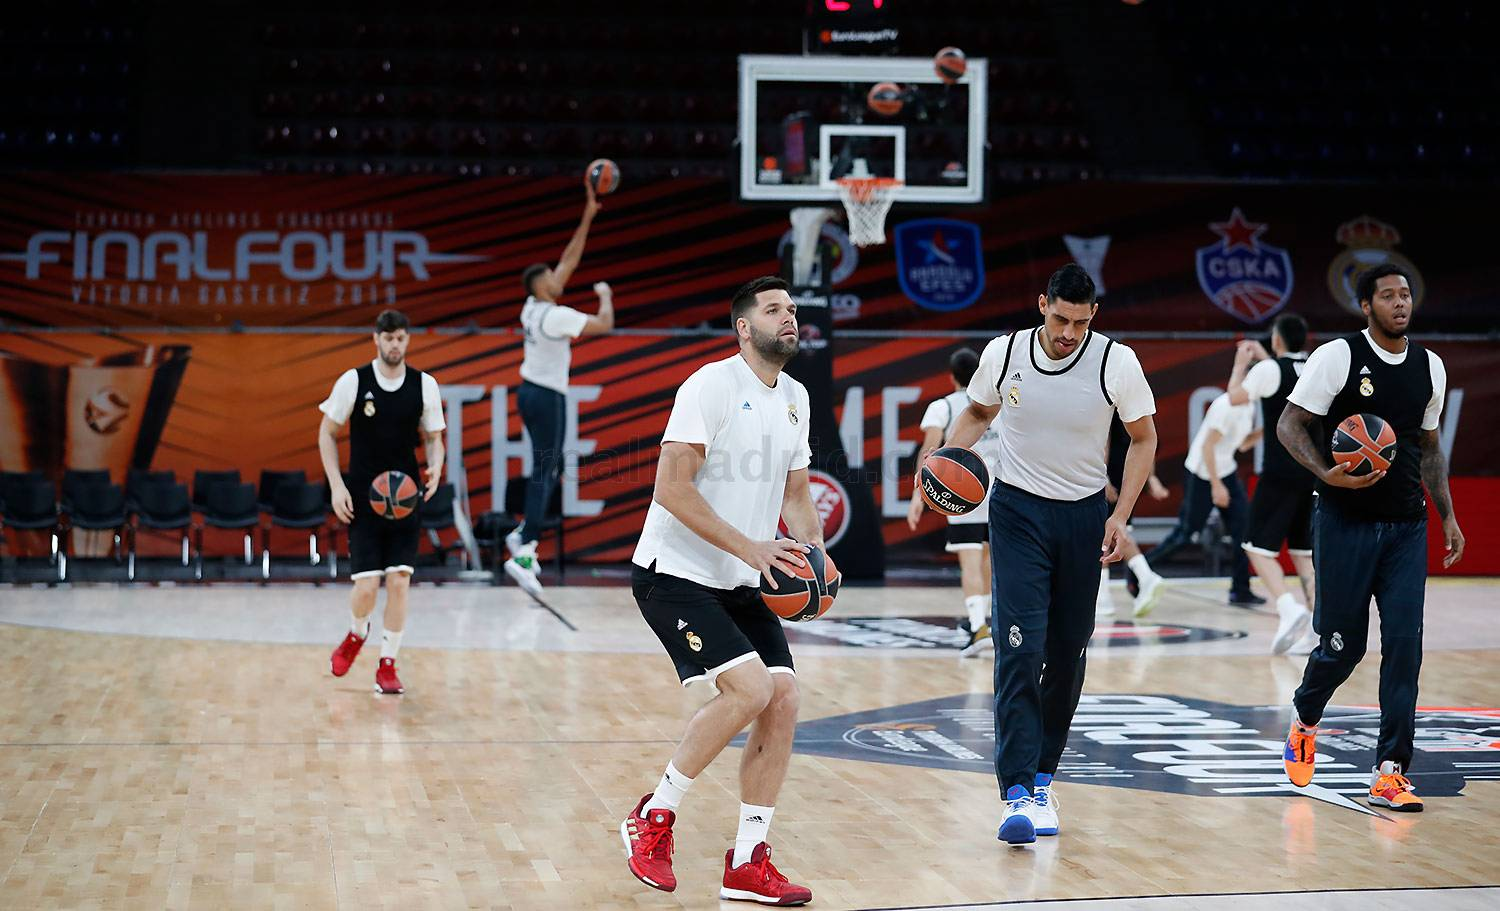 Real Madrid - Entrenamiento del Real Madrid de baloncesto en Vitoria - 17-05-2019